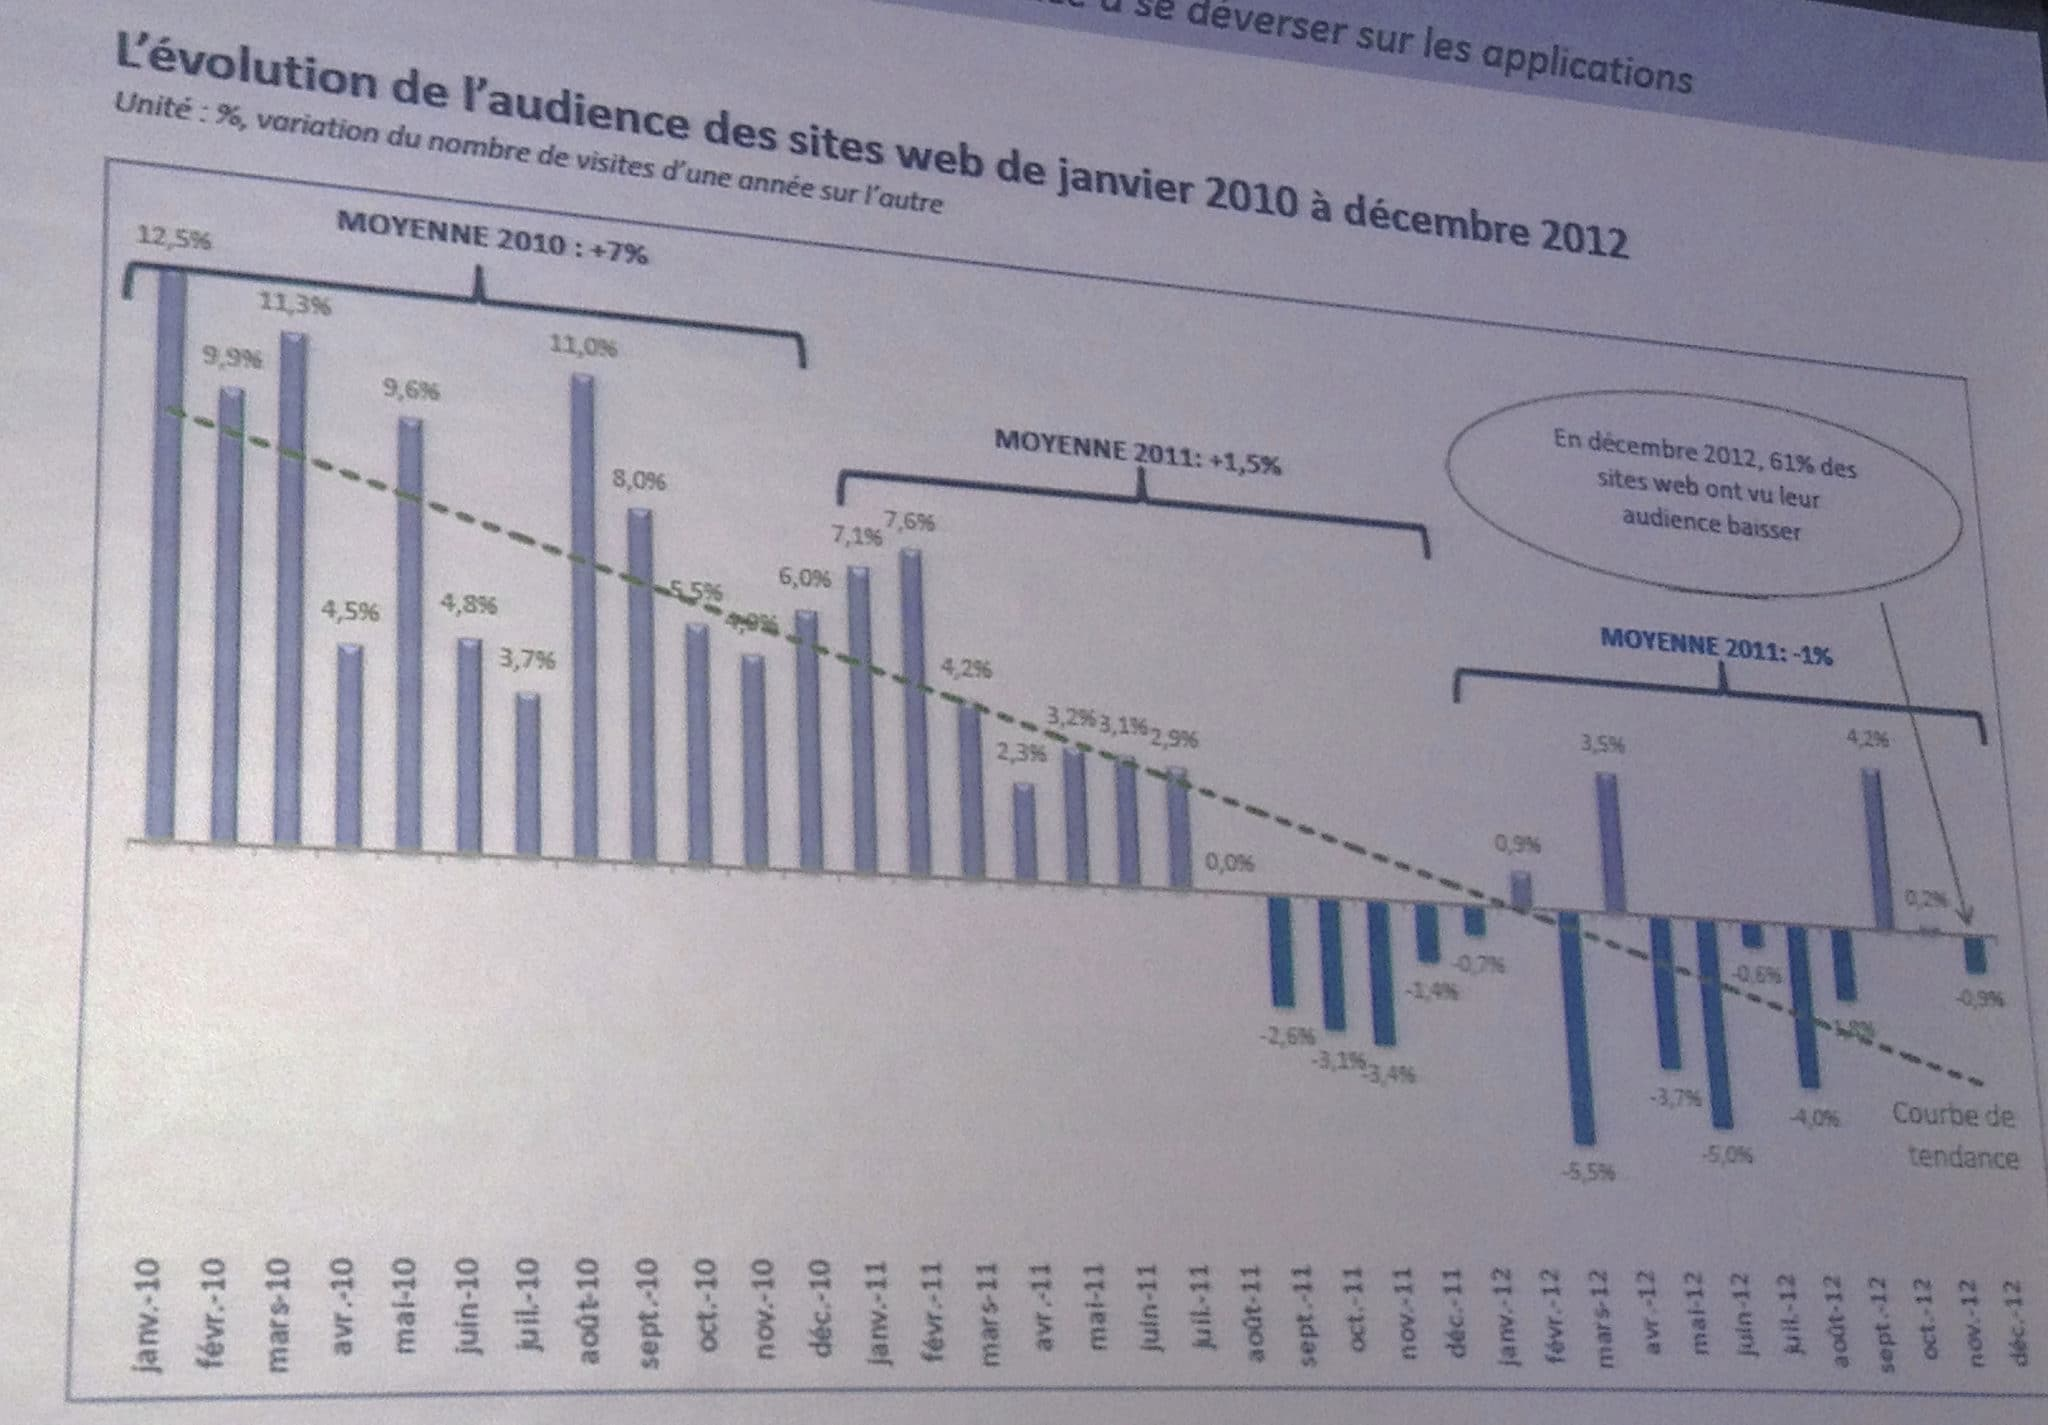 Trafic web vers mobile - mediaculture.fr